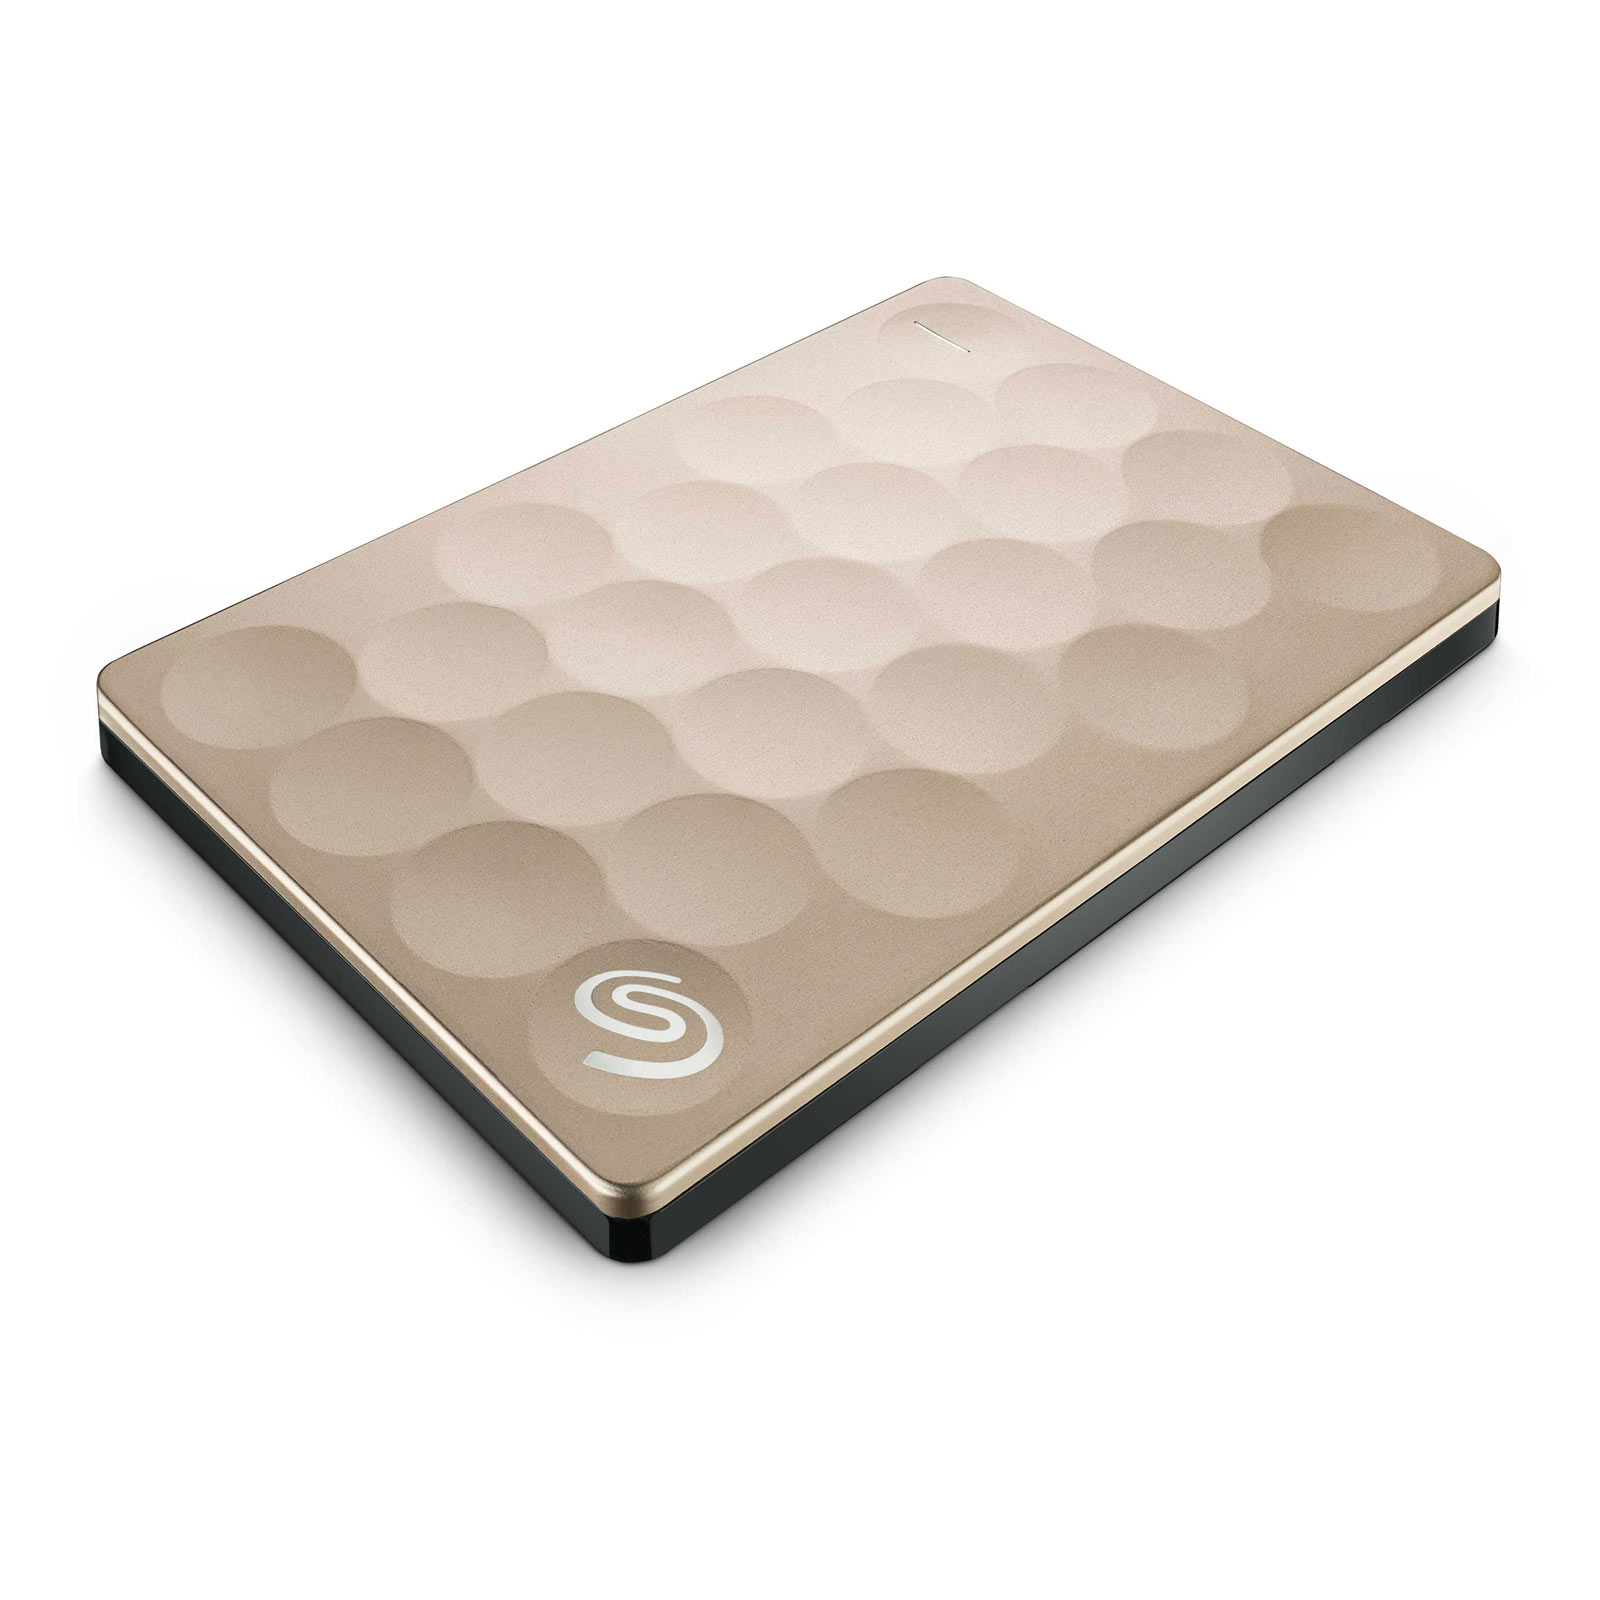 seagate backup plus ultra slim 2 to or usb 3 0 disque dur externe seagate technology sur. Black Bedroom Furniture Sets. Home Design Ideas